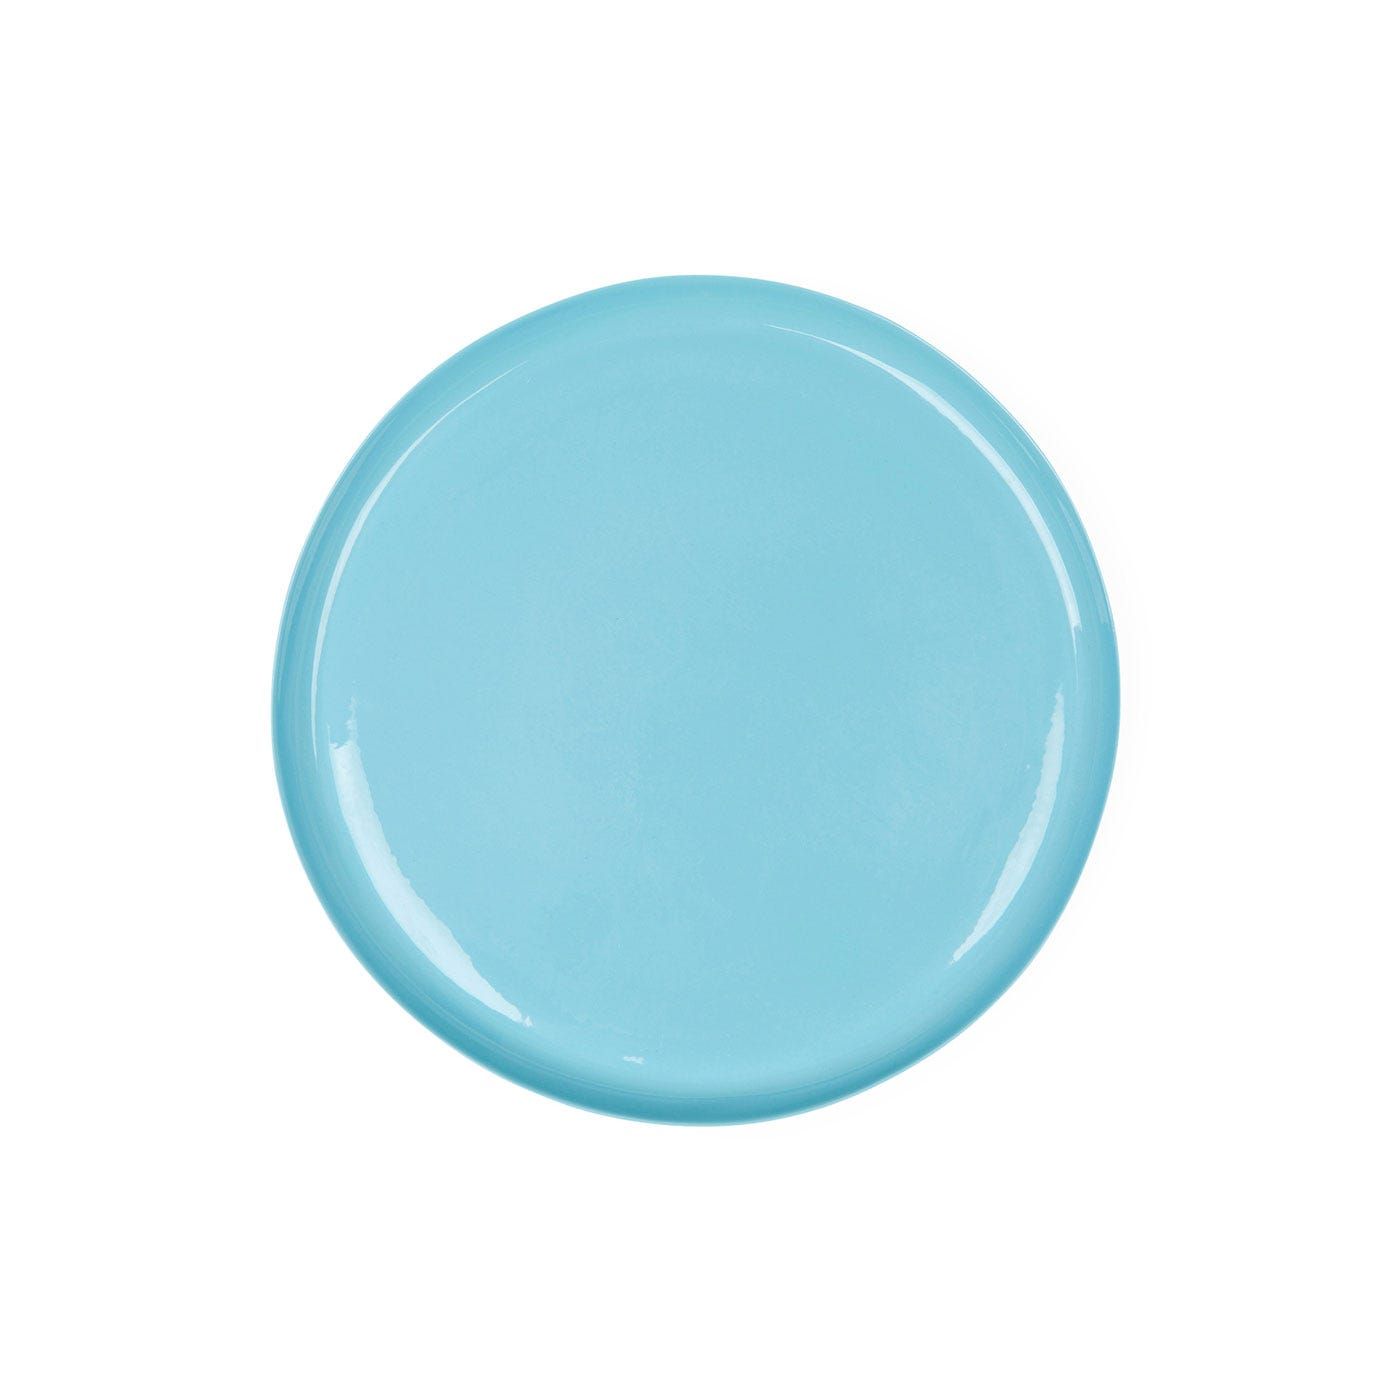 Porcelain Turquoise Side Plate